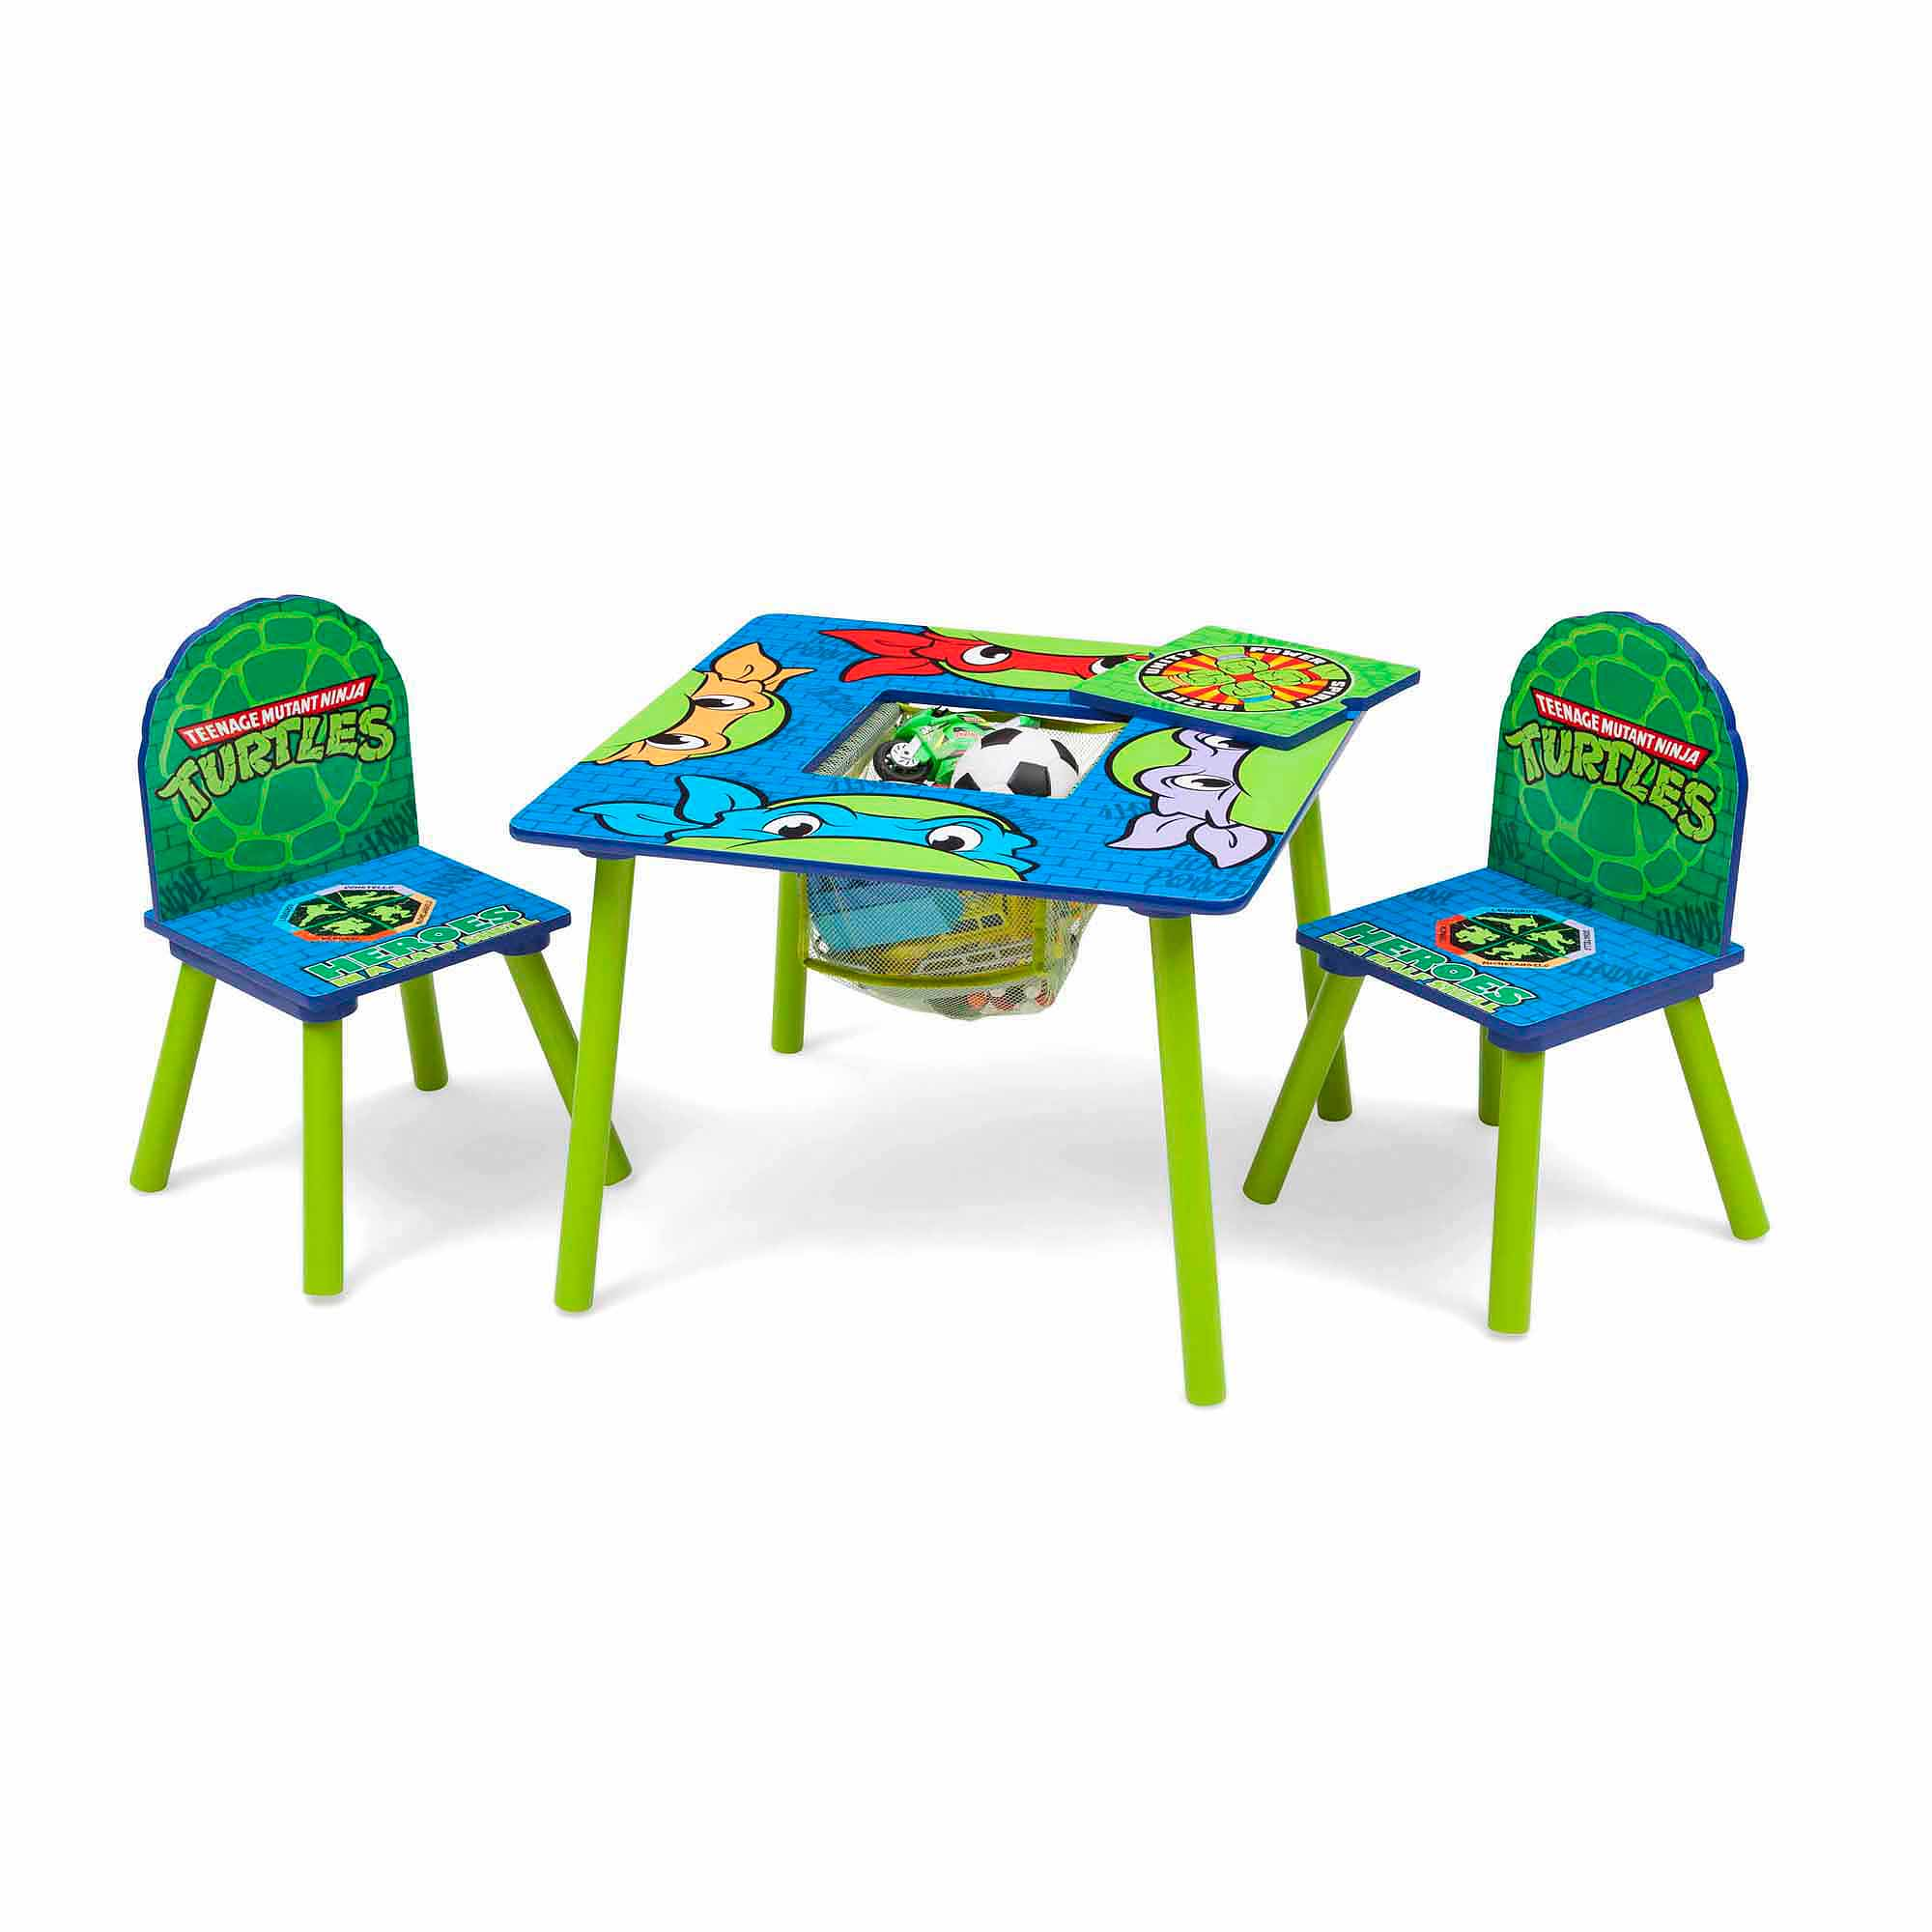 Nickelodeon Teenage Mutant Ninja Turtles, Toddler Kid Table and Chair Set with Storage by Overstock